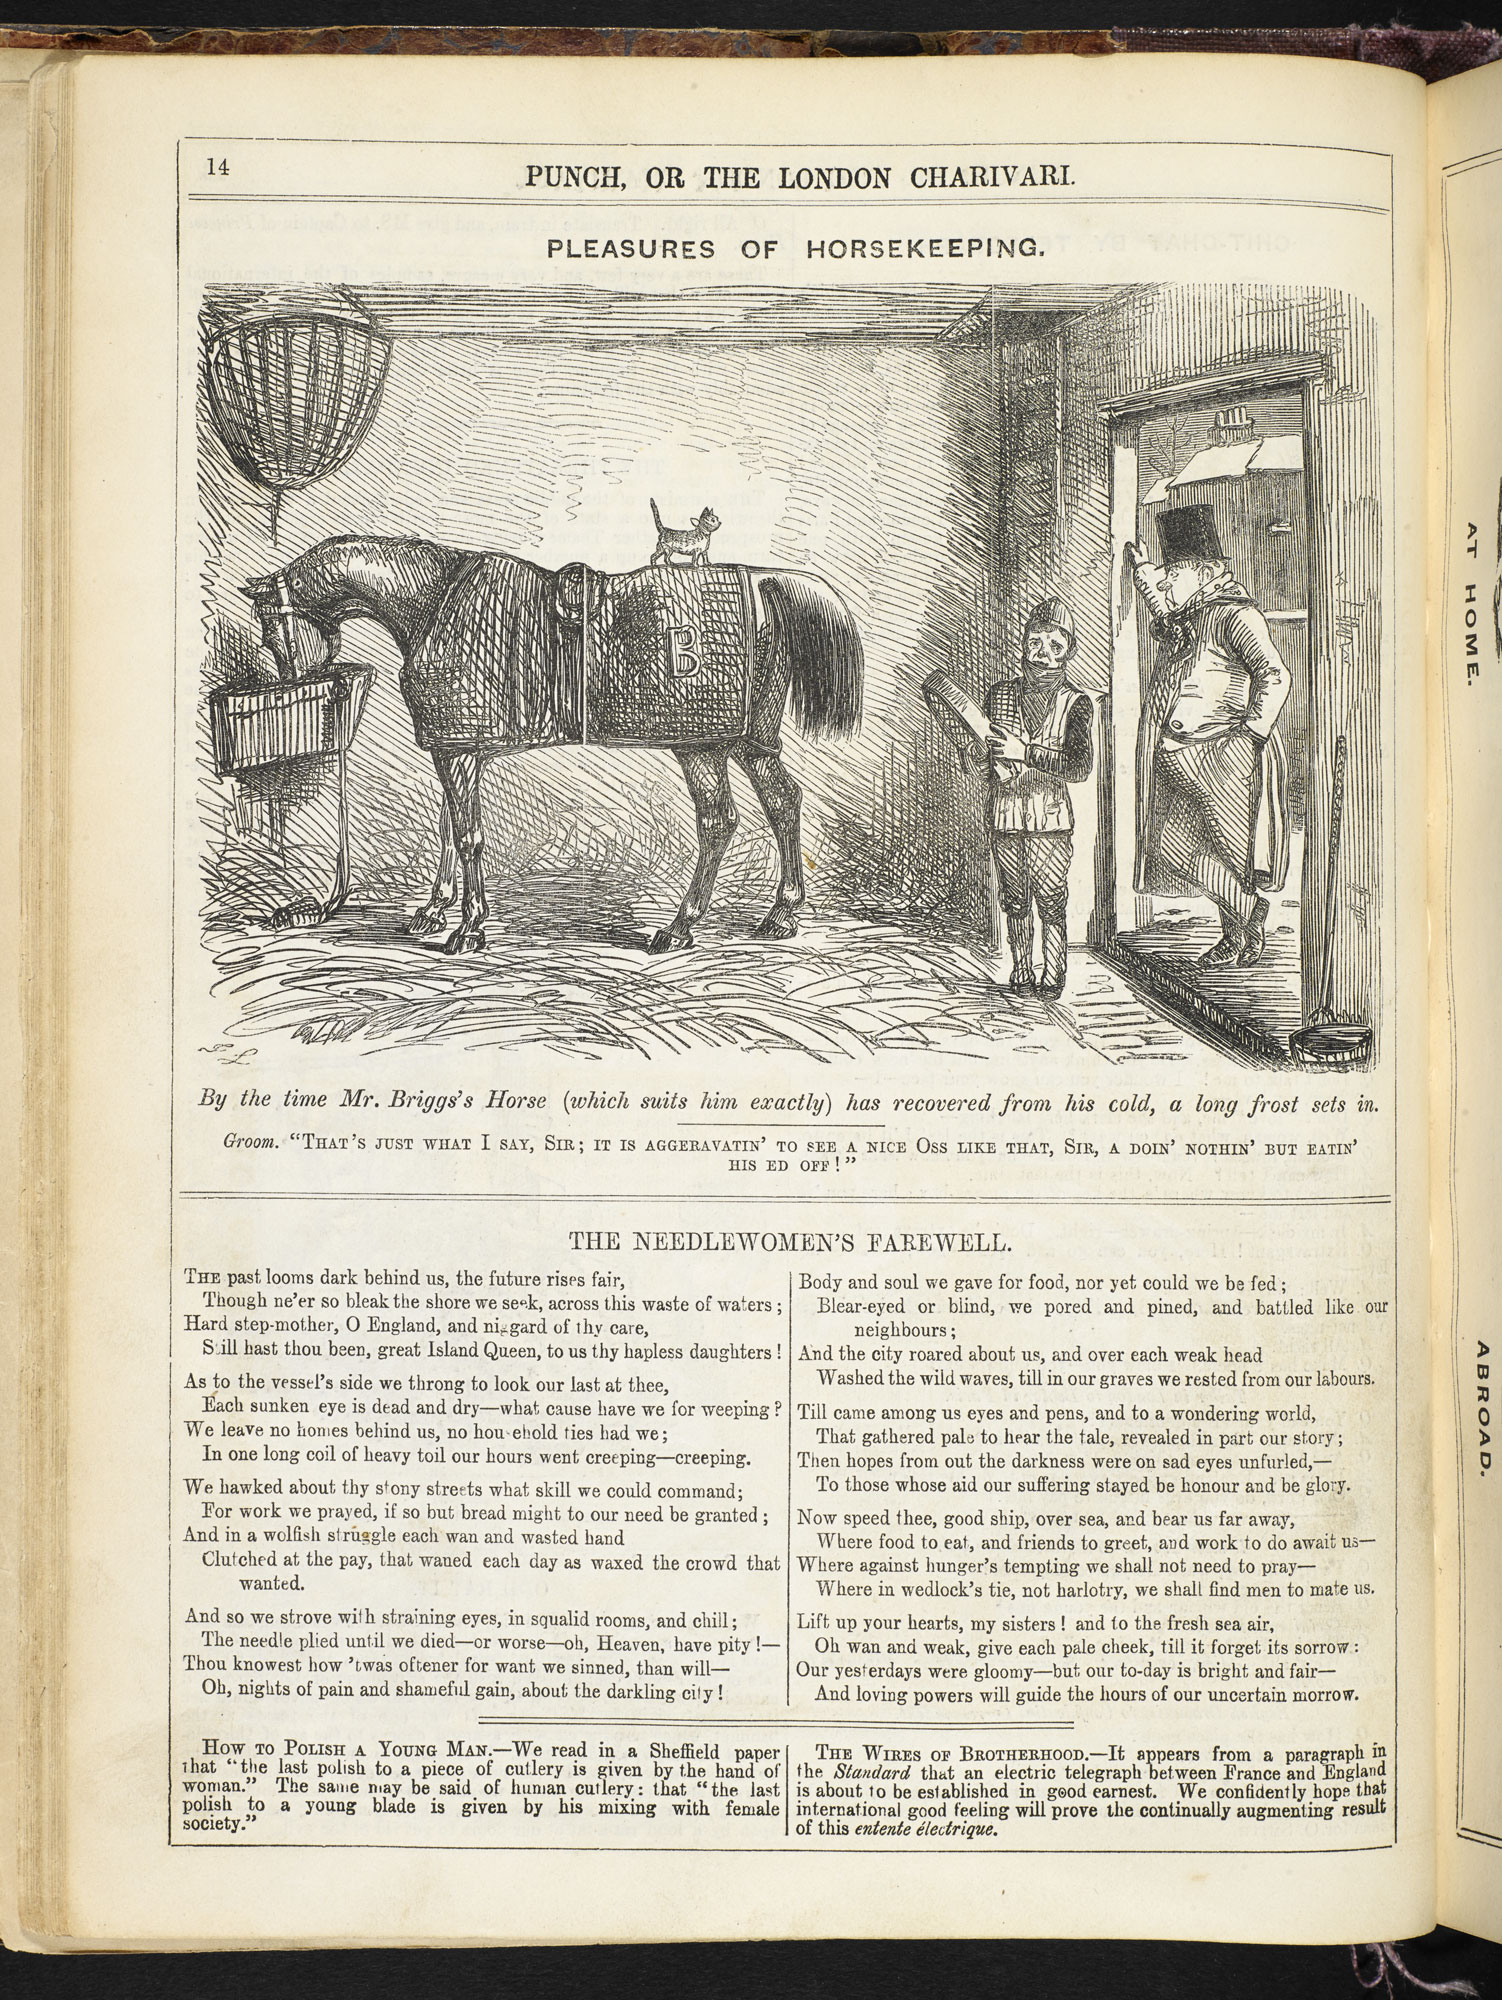 Punch illustration comparing a needleworker in England and in Europe [page: 14]